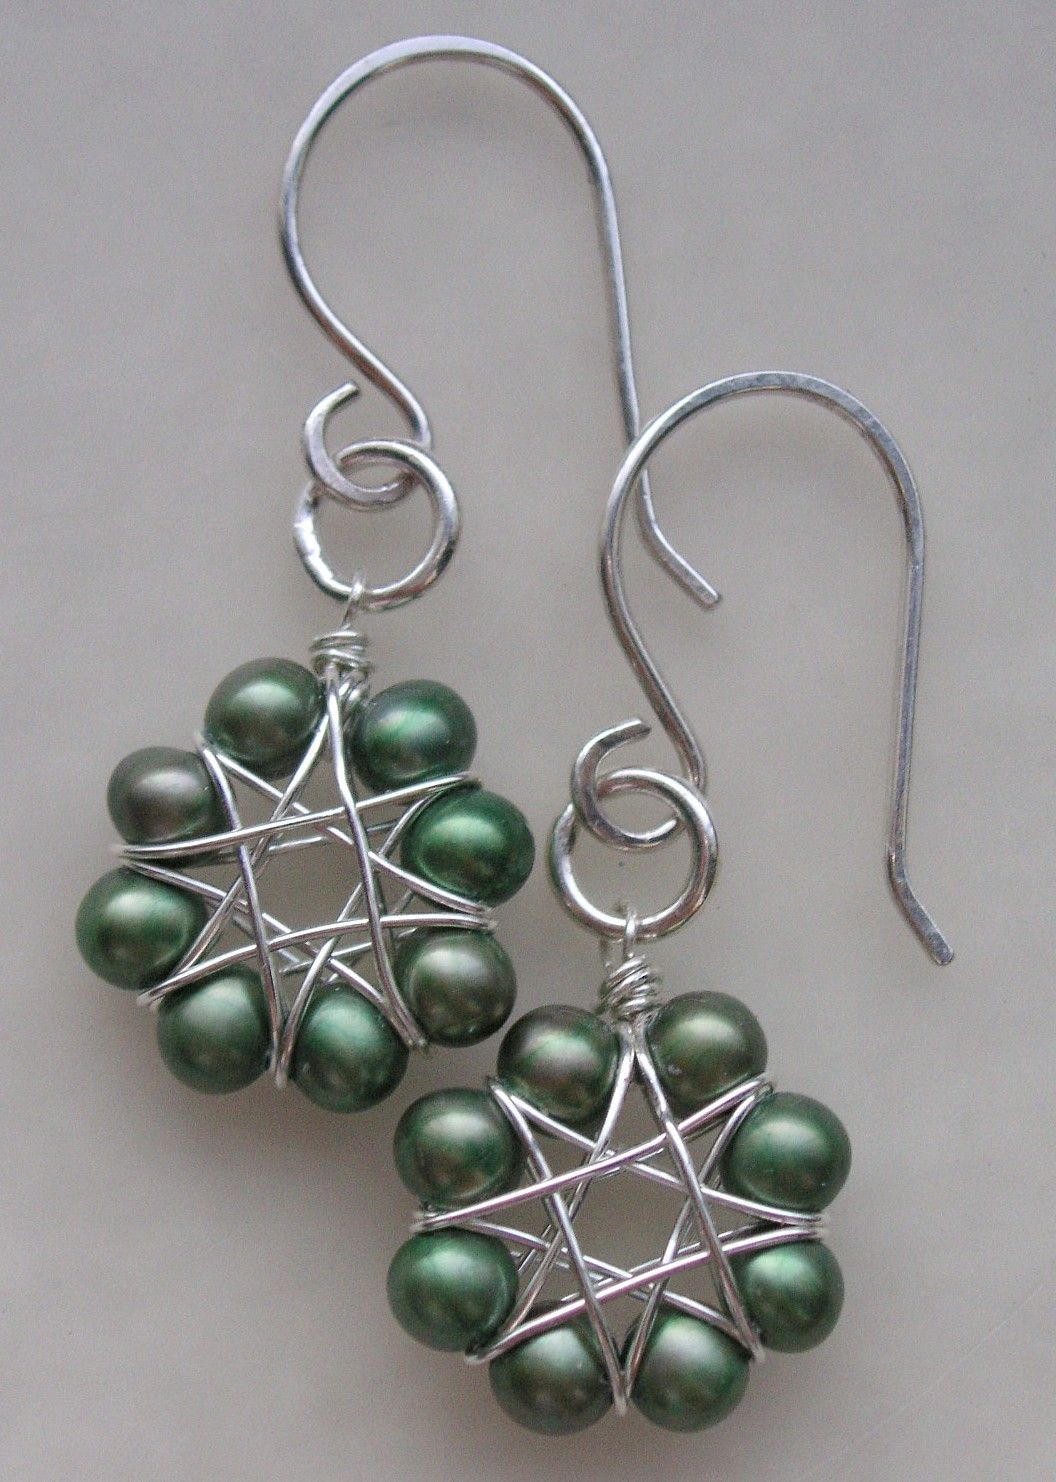 New Projects! | Shapes, Wire wrapping and Star